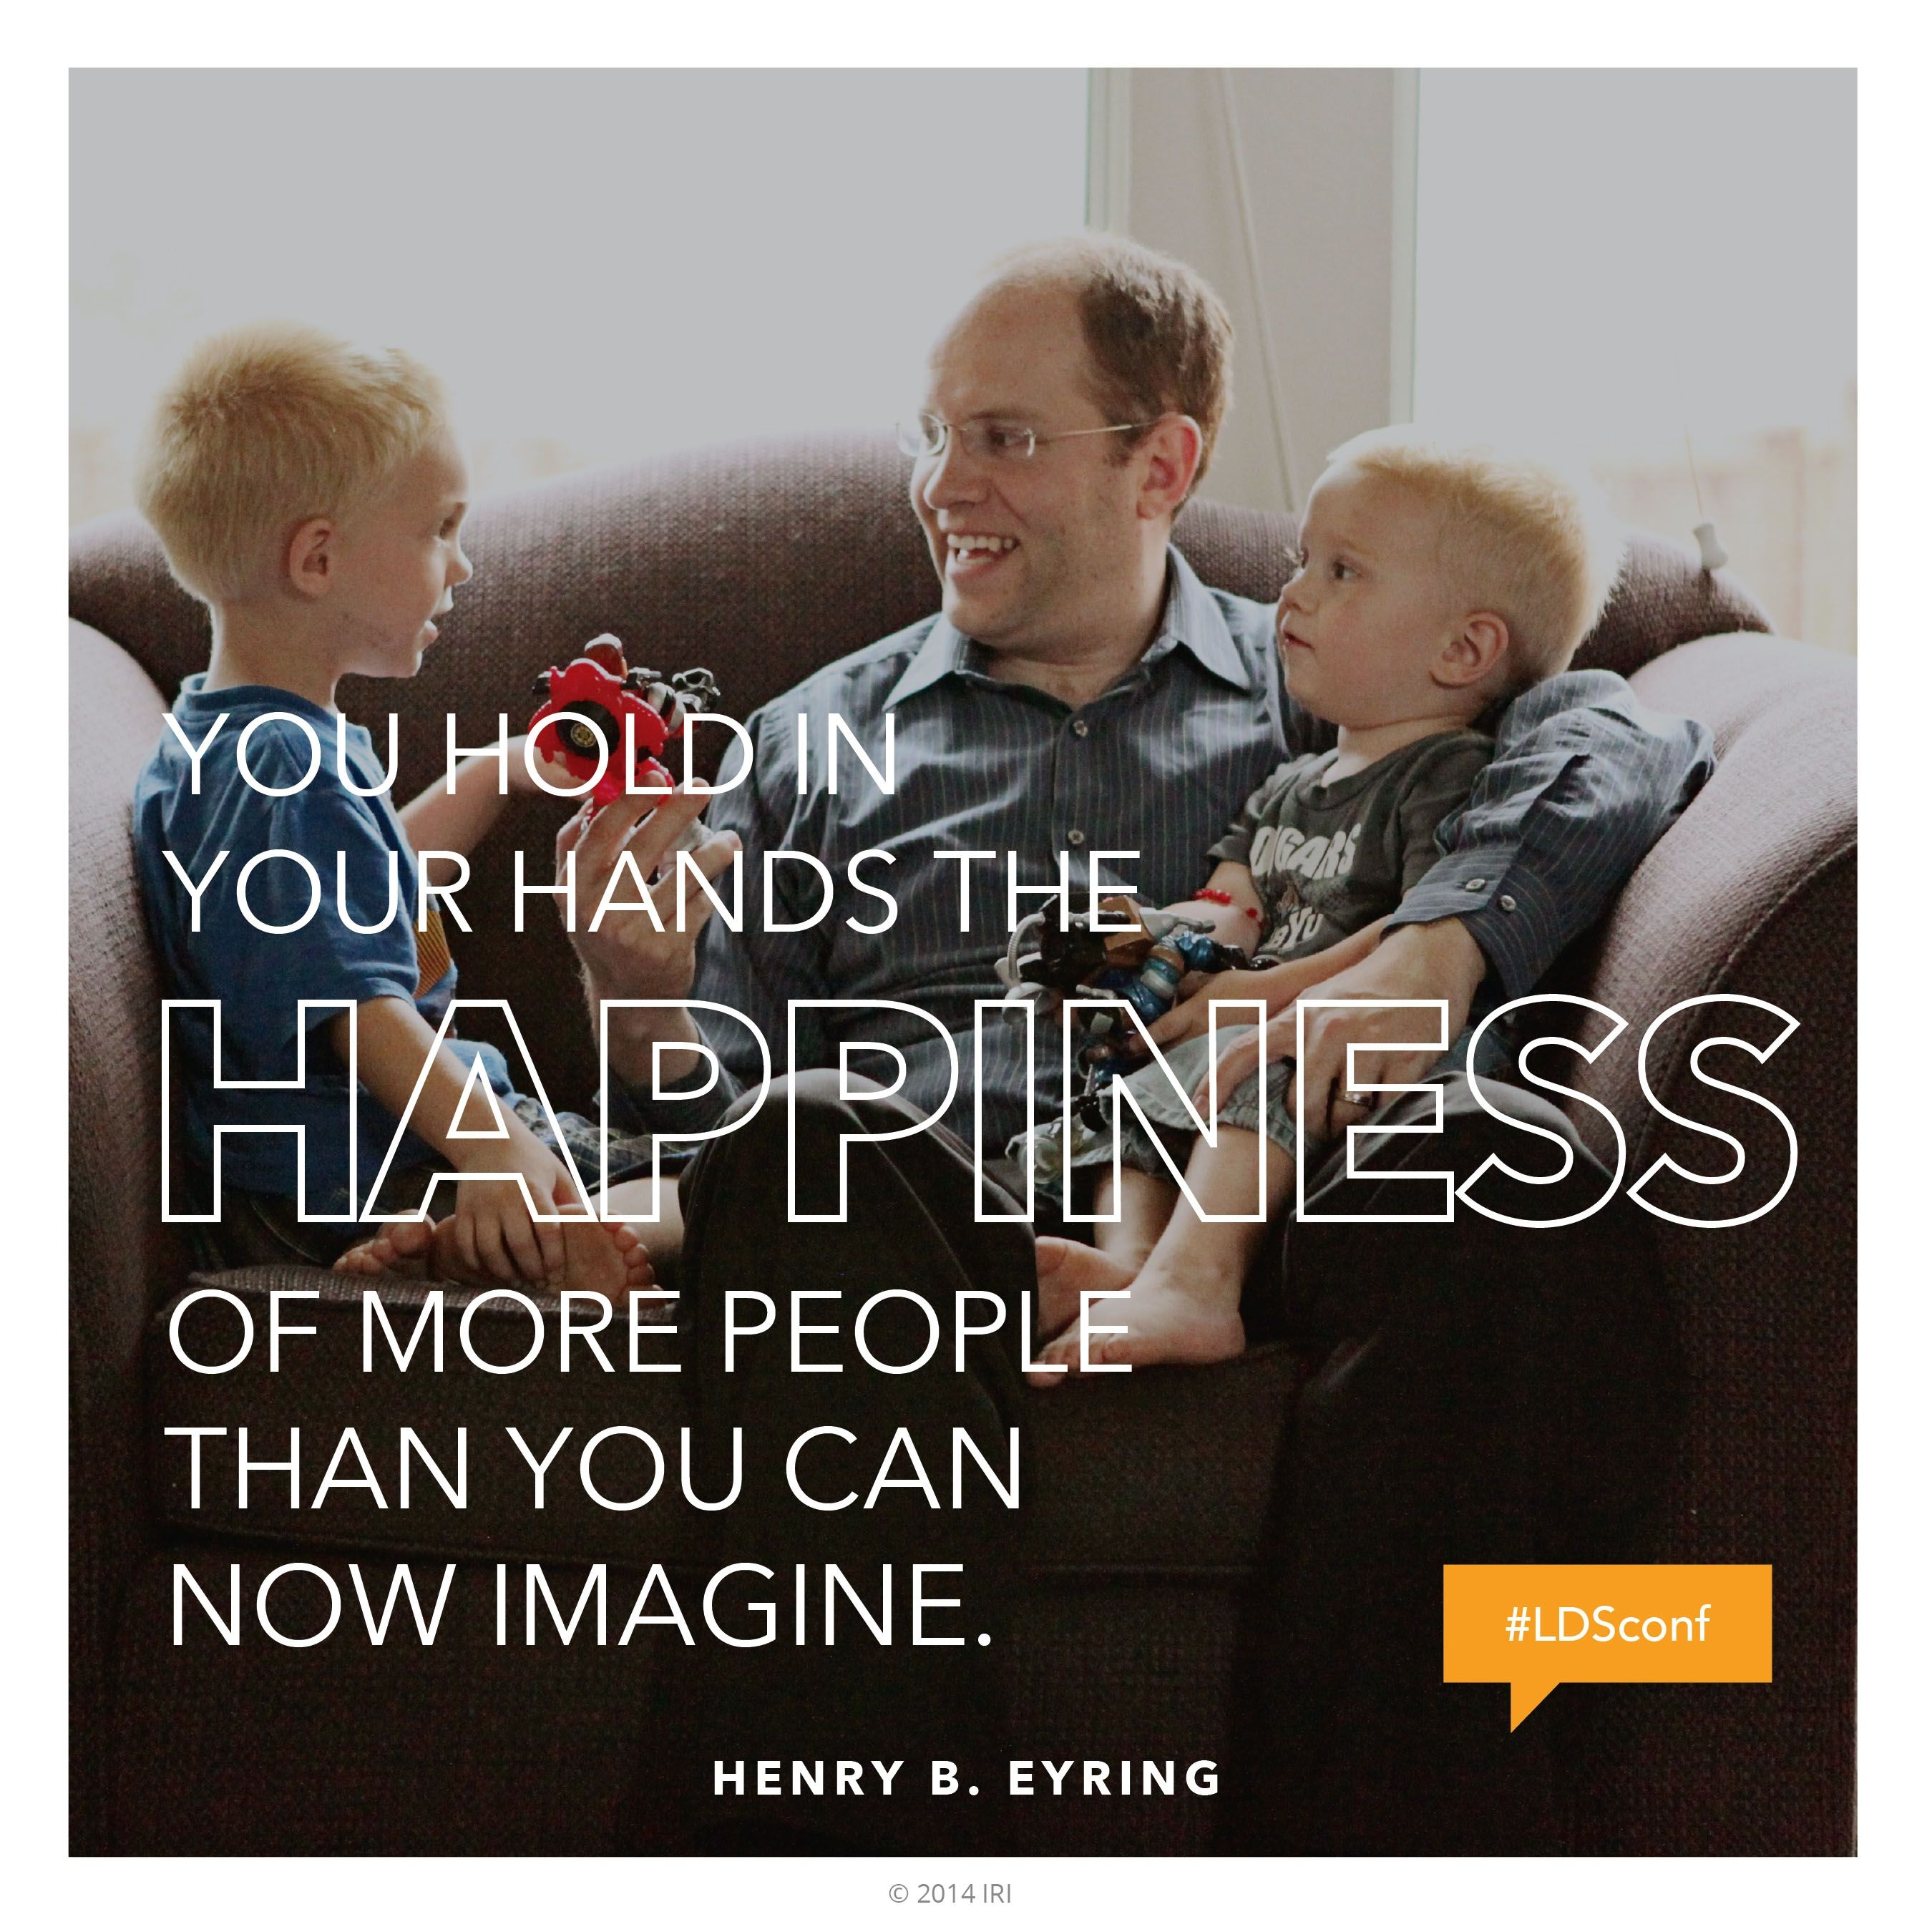 """""""You hold in your hands the happiness of more people than you can now imagine.""""—President Henry B. Eyring, """"A Priceless Heritage of Hope"""""""